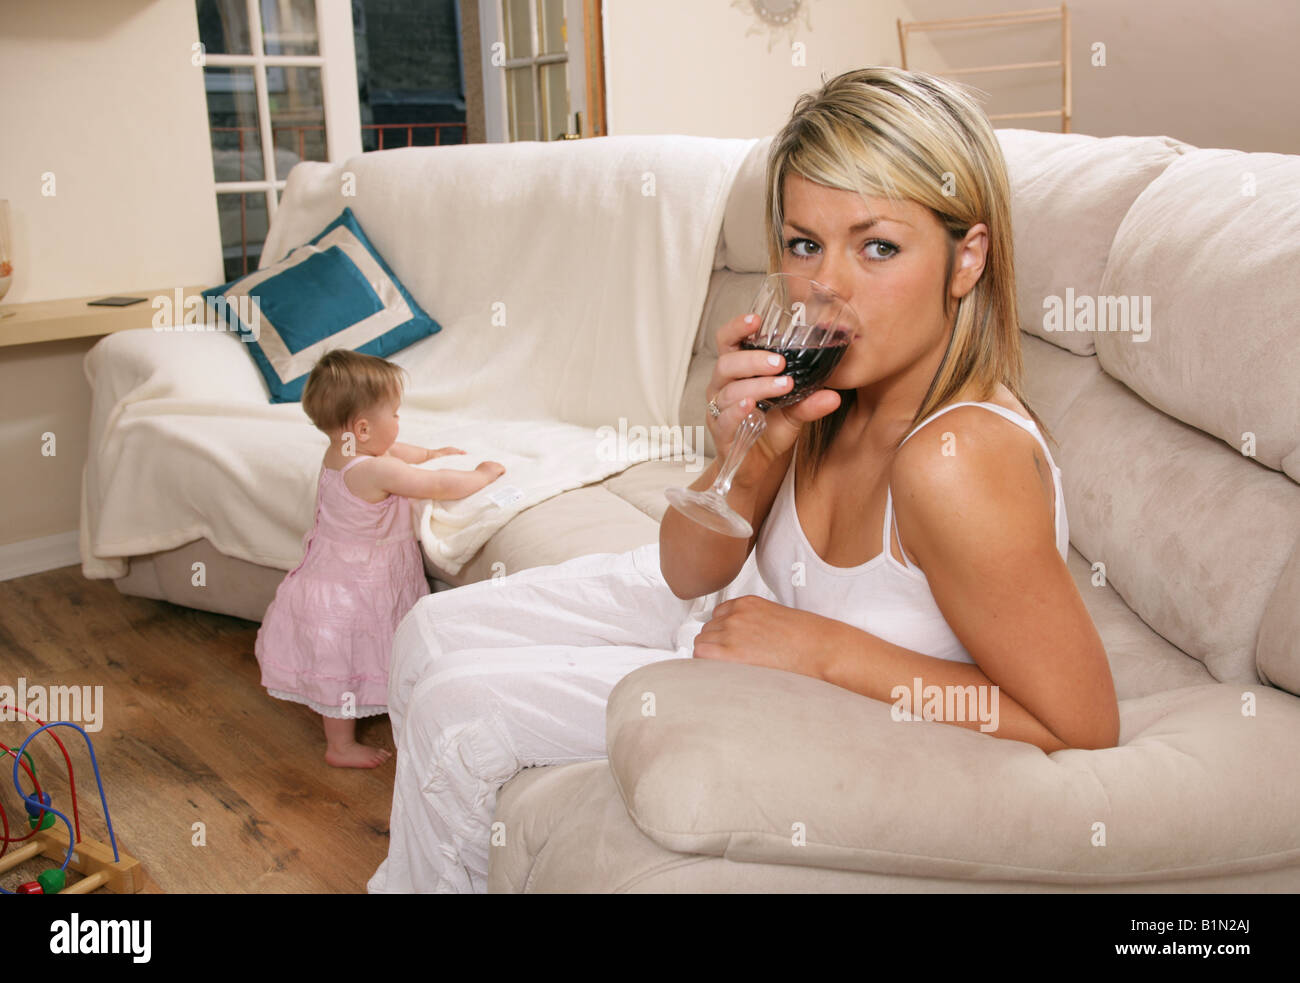 A young mother with her 9 month old child. - Stock Image